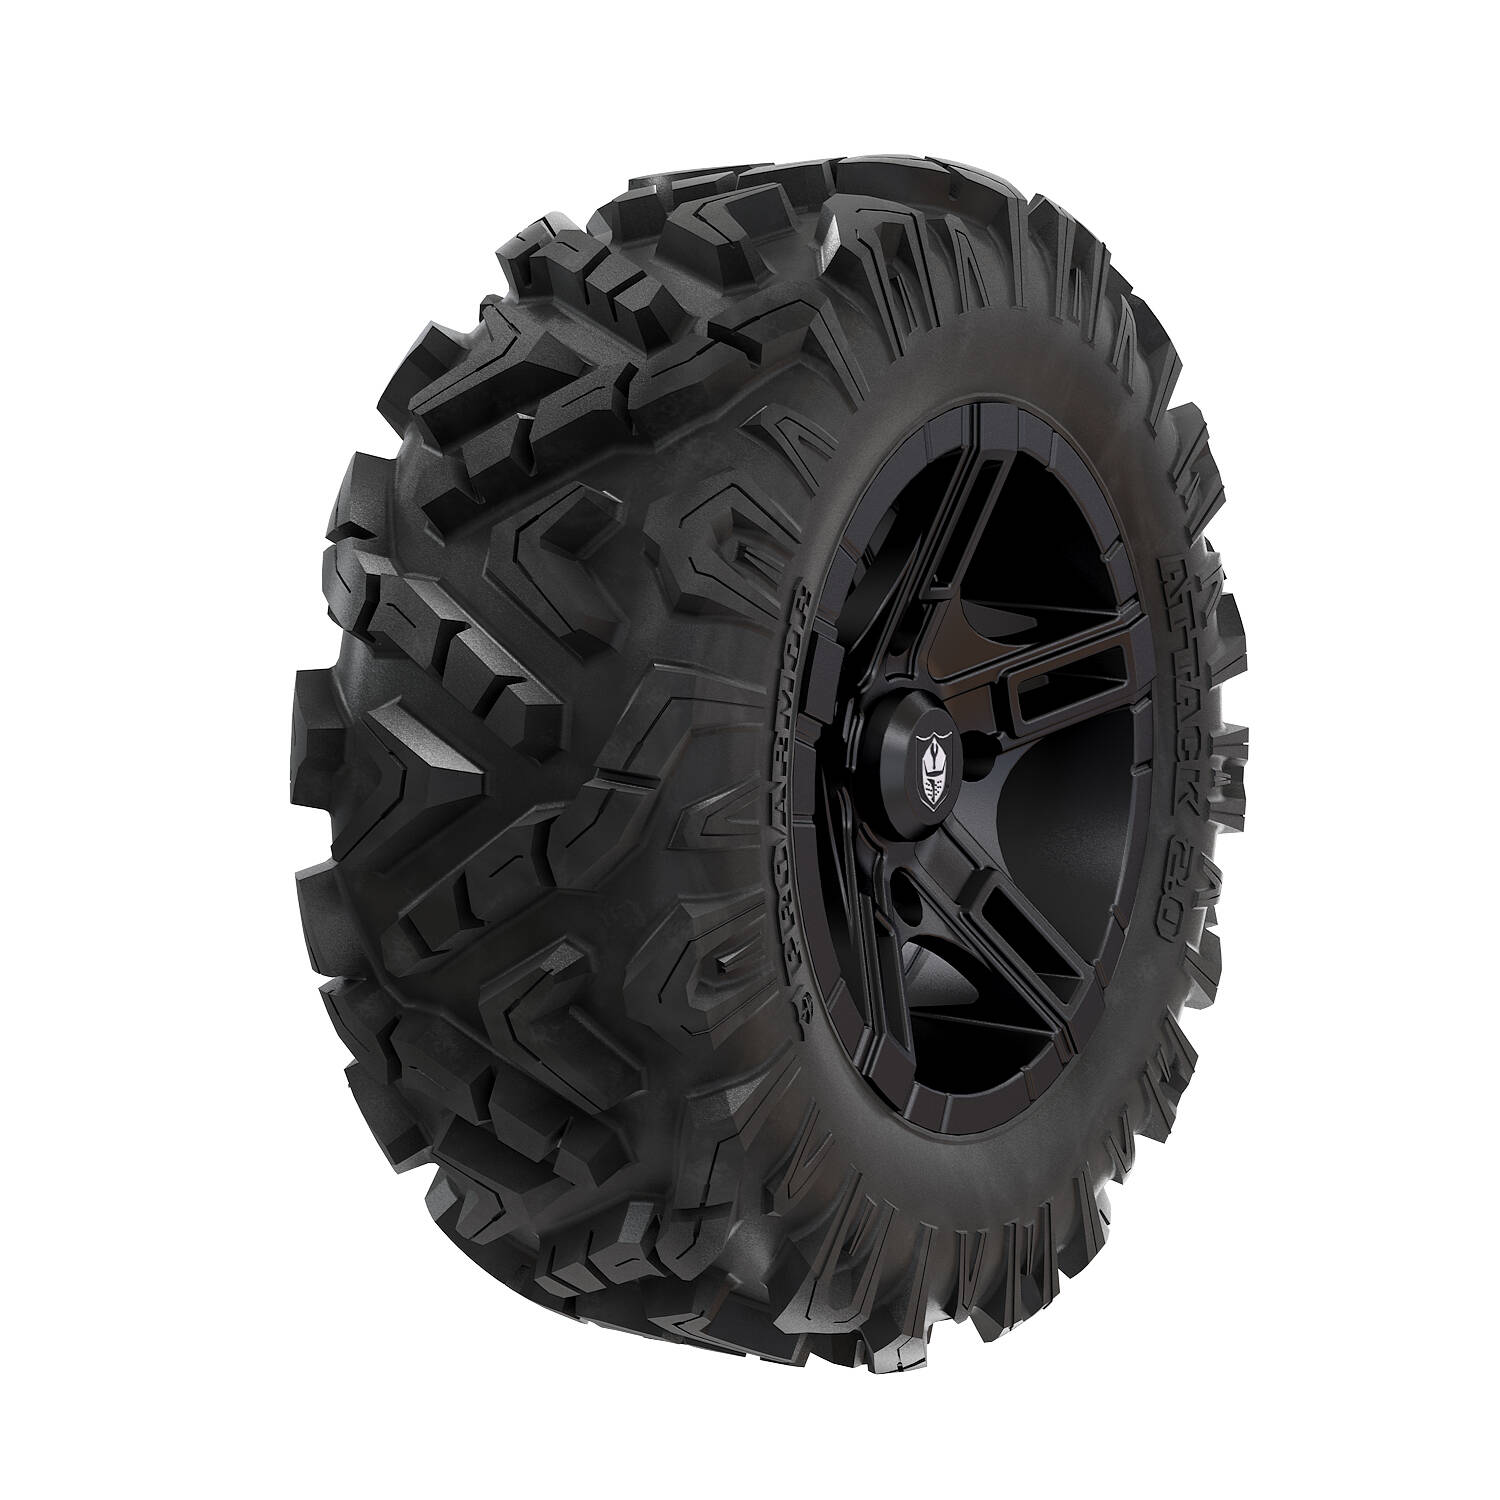 Pro Armor® Wheel & Tire Set: Flare - Matte Black & Attack 2.0 - 28""